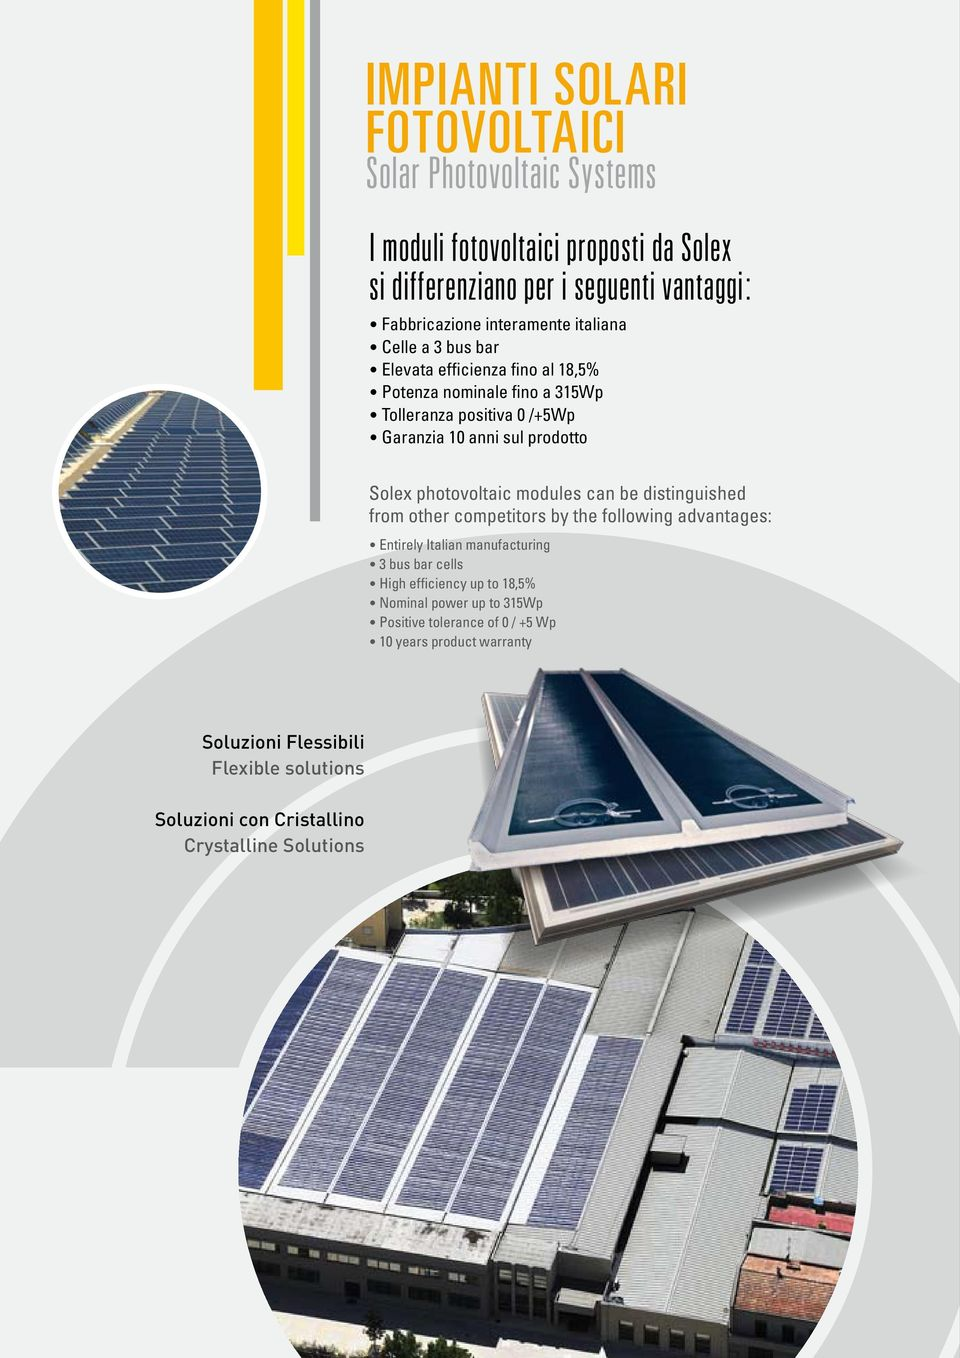 photovoltaic modules can be distinguished from other competitors by the following advantages: Entirely Italian manufacturing 3 bus bar cells High efficiency up to